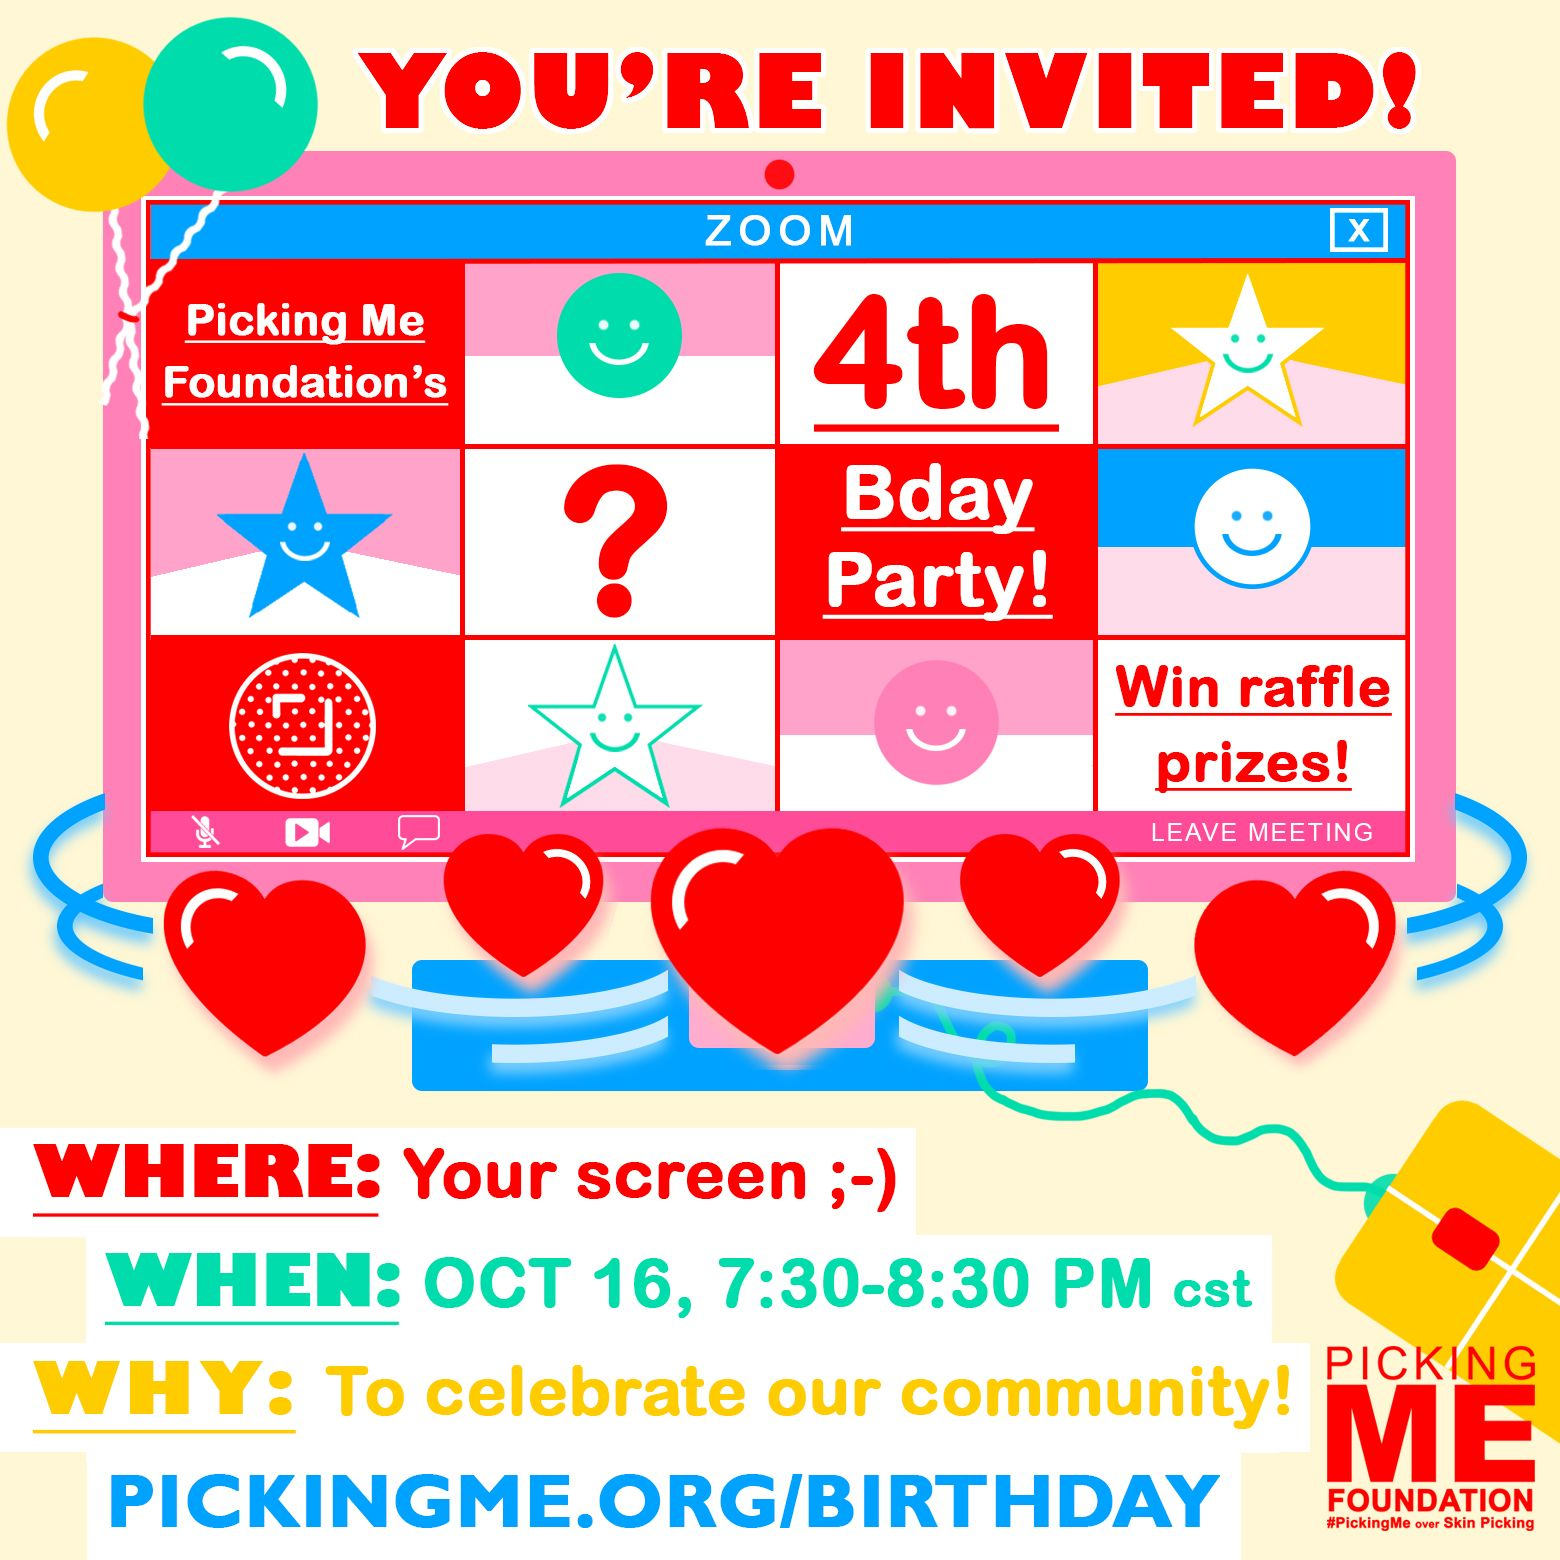 #PickingMe's 4th Bday Zoom Party!